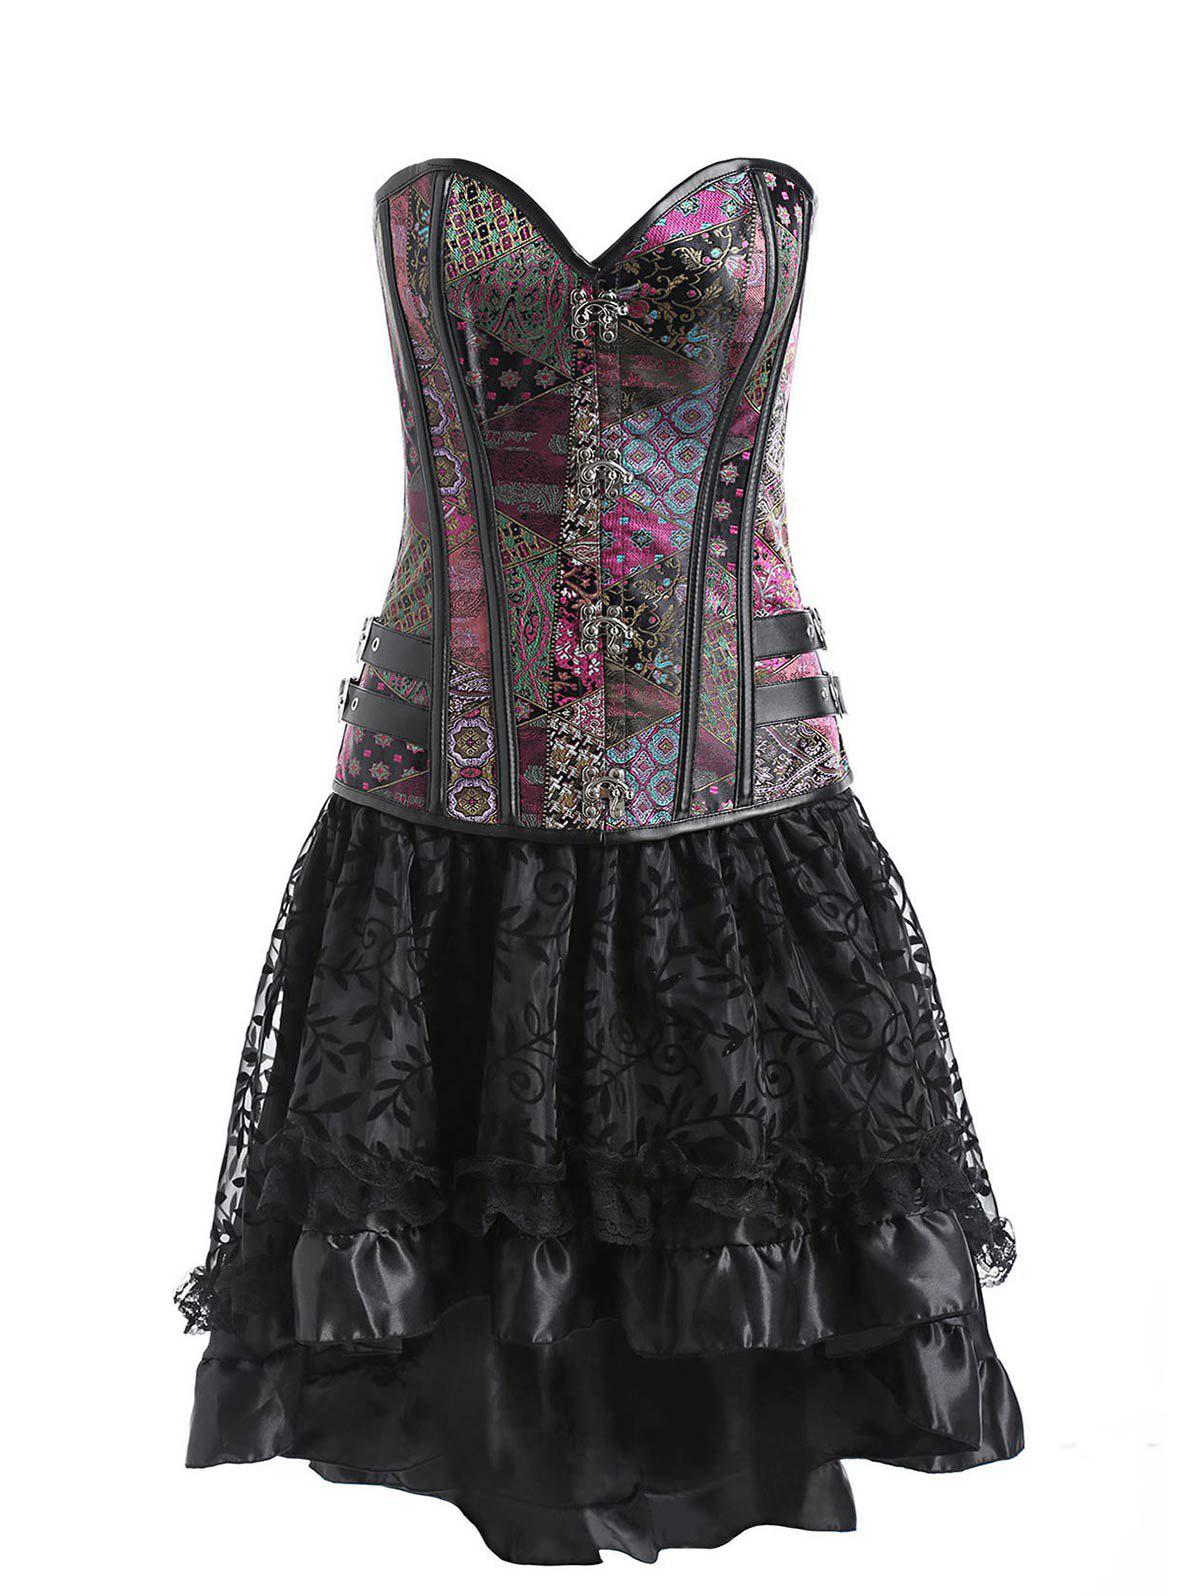 Affordable Two Piece Vintage Brocade Flounce Corset Dress